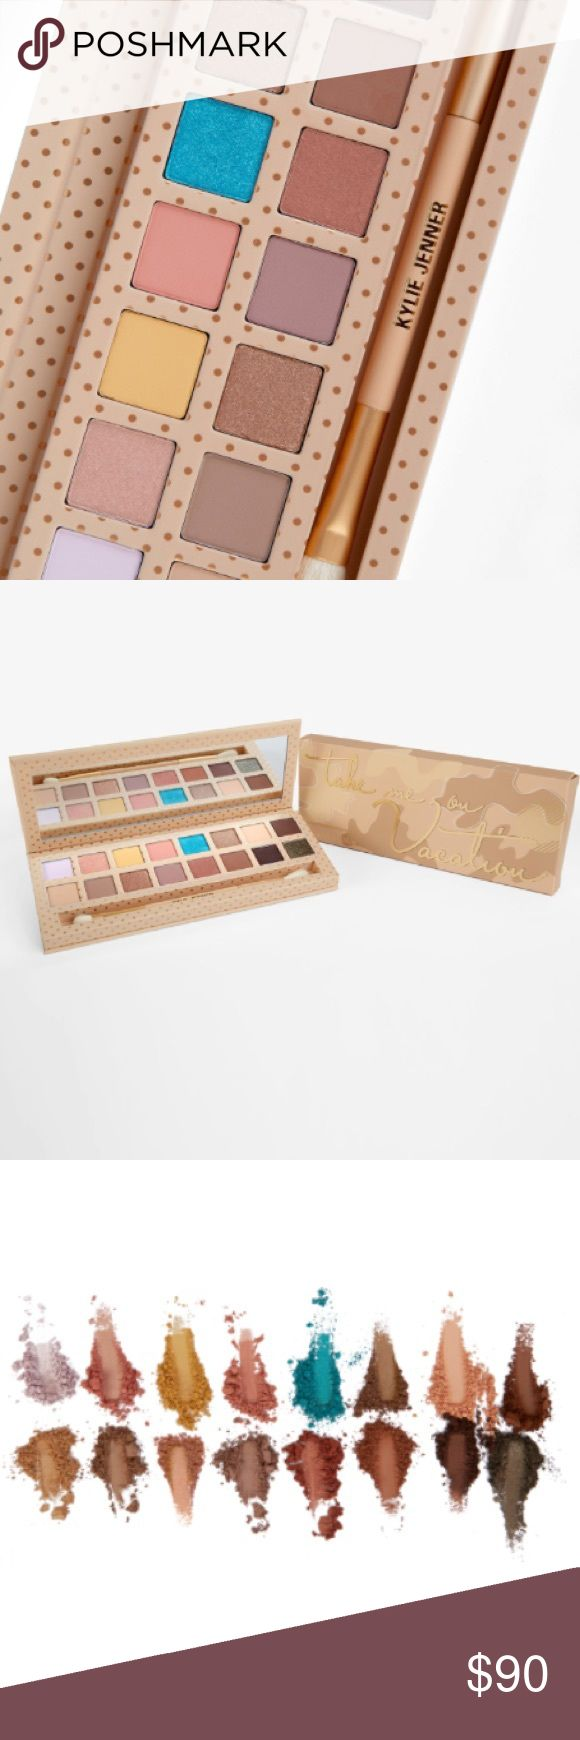 Kylie Vacation Eye Shadow Palette Authentic, never opened or taken out of package, used pics from Kylie's website / Instragram. Will post pics of physical receipt this week. Kylie Cosmetics Makeup Eyeshadow